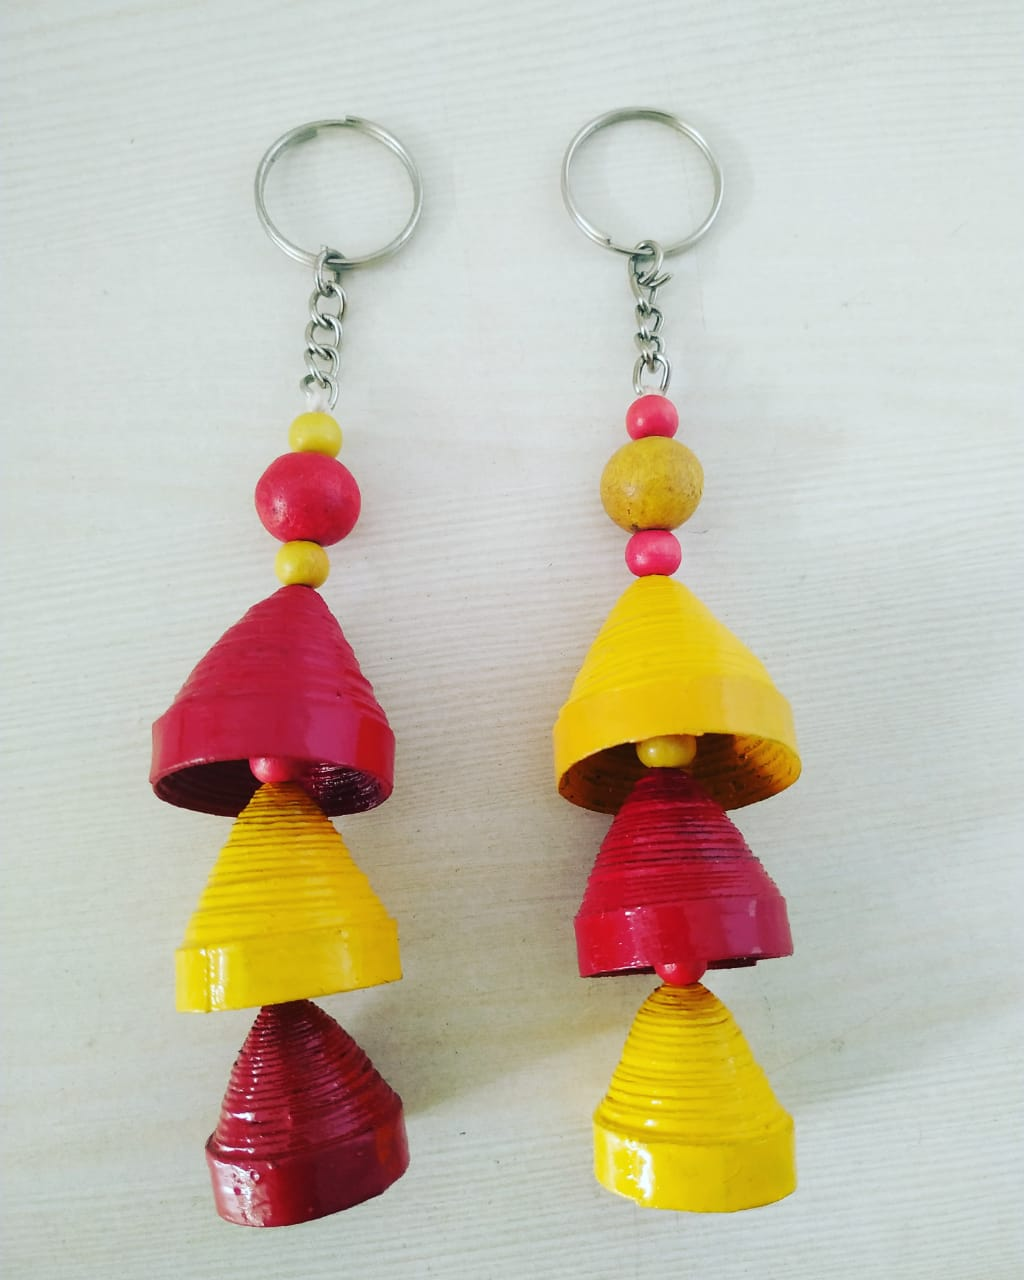 Handmade Key rings